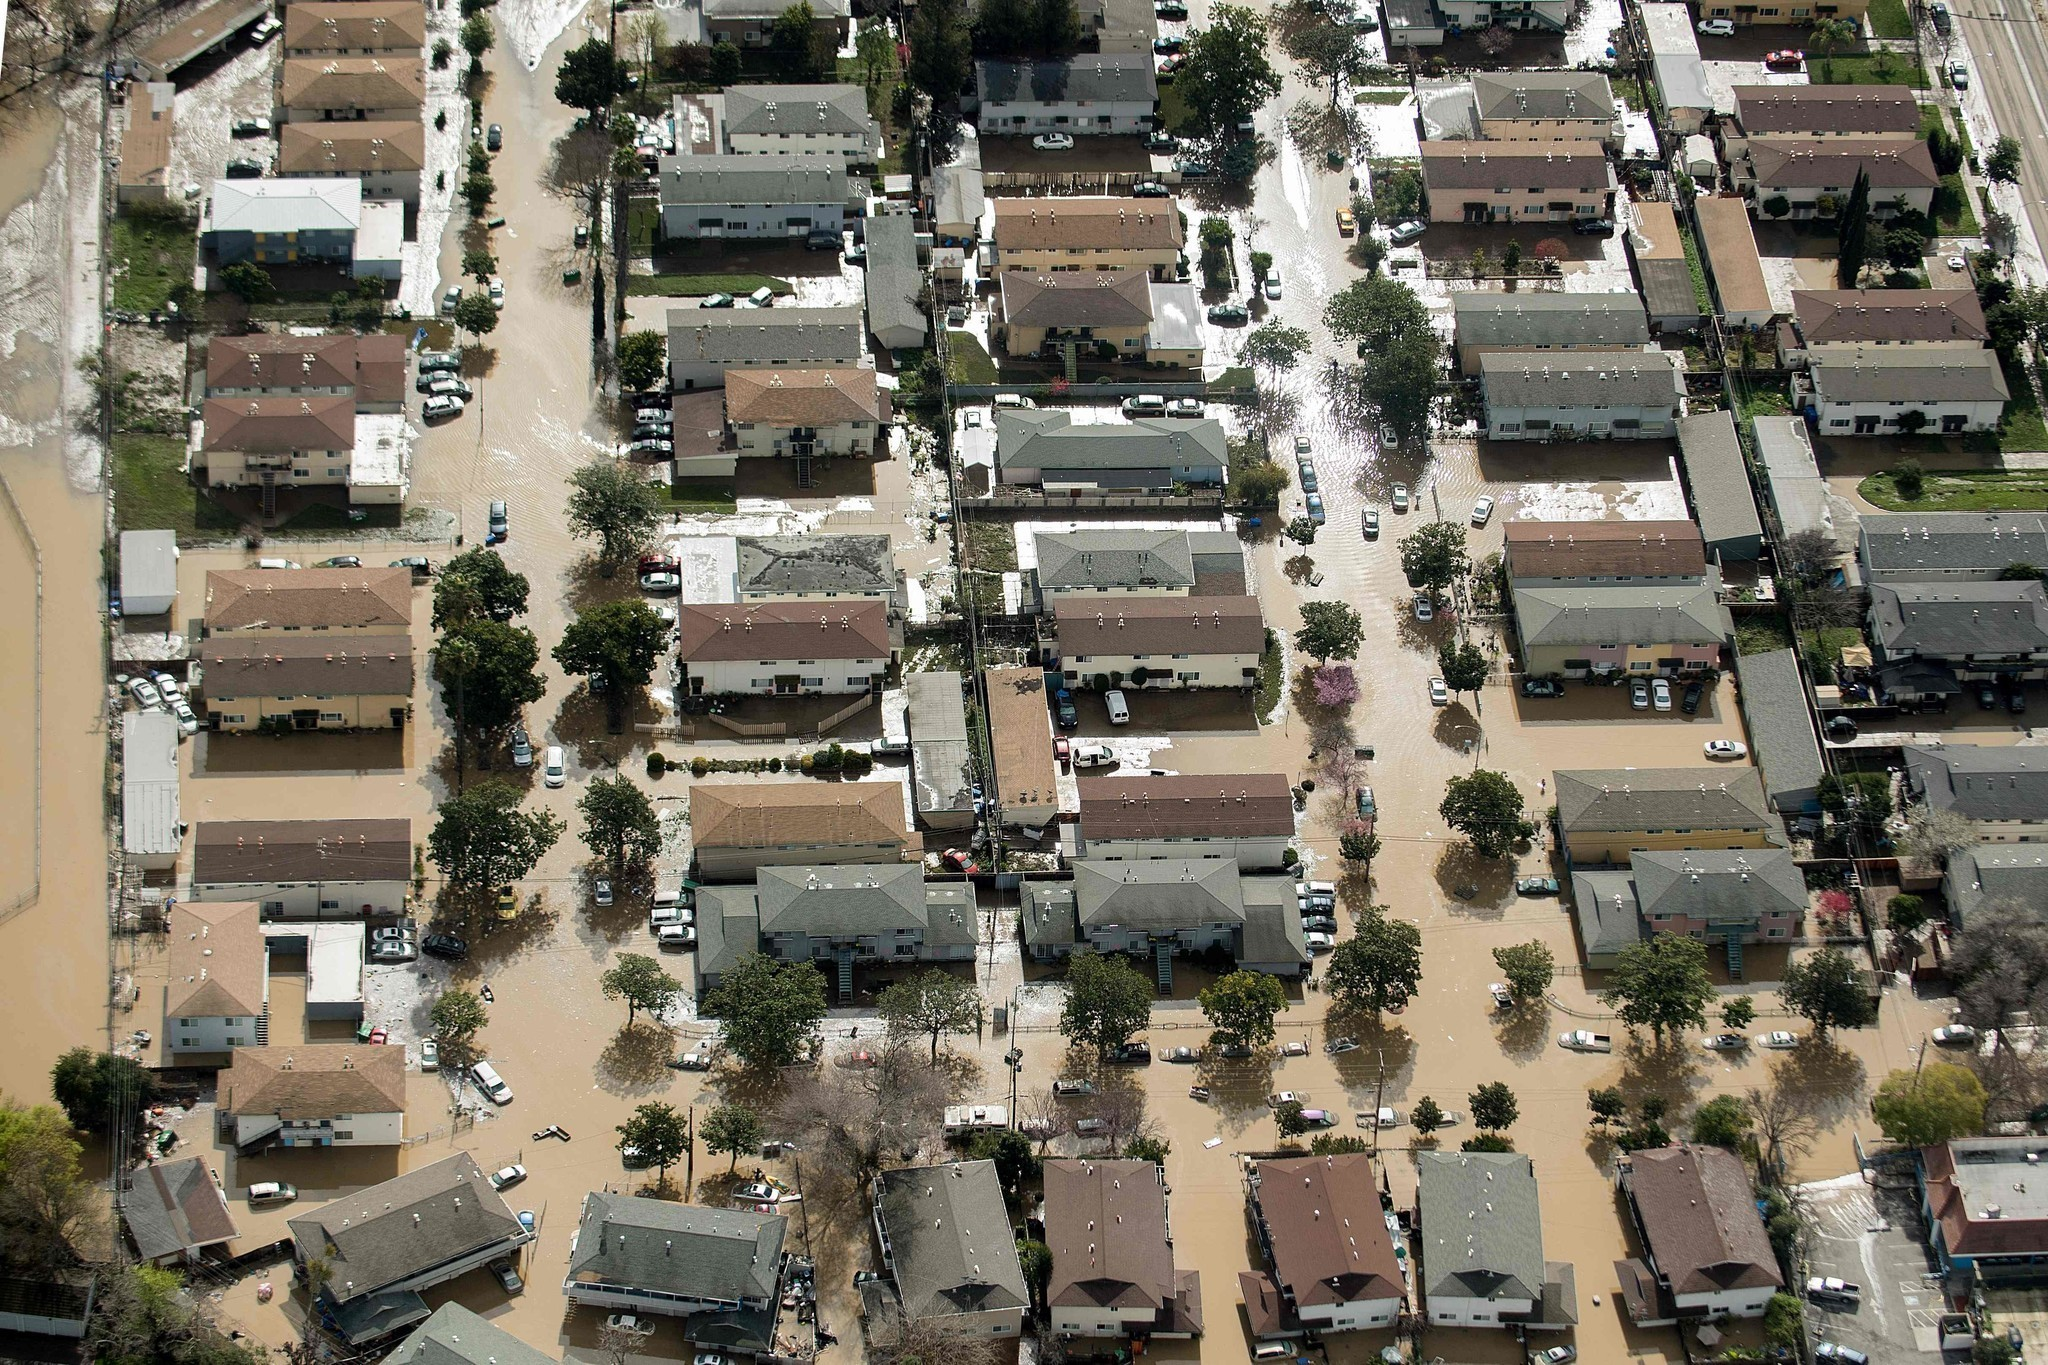 the problem of floods in my neighborhood Sacramento levee & flood risk everything you need to know about flood risk in your area by rowena but the underlying structural problem for the sacramento region.